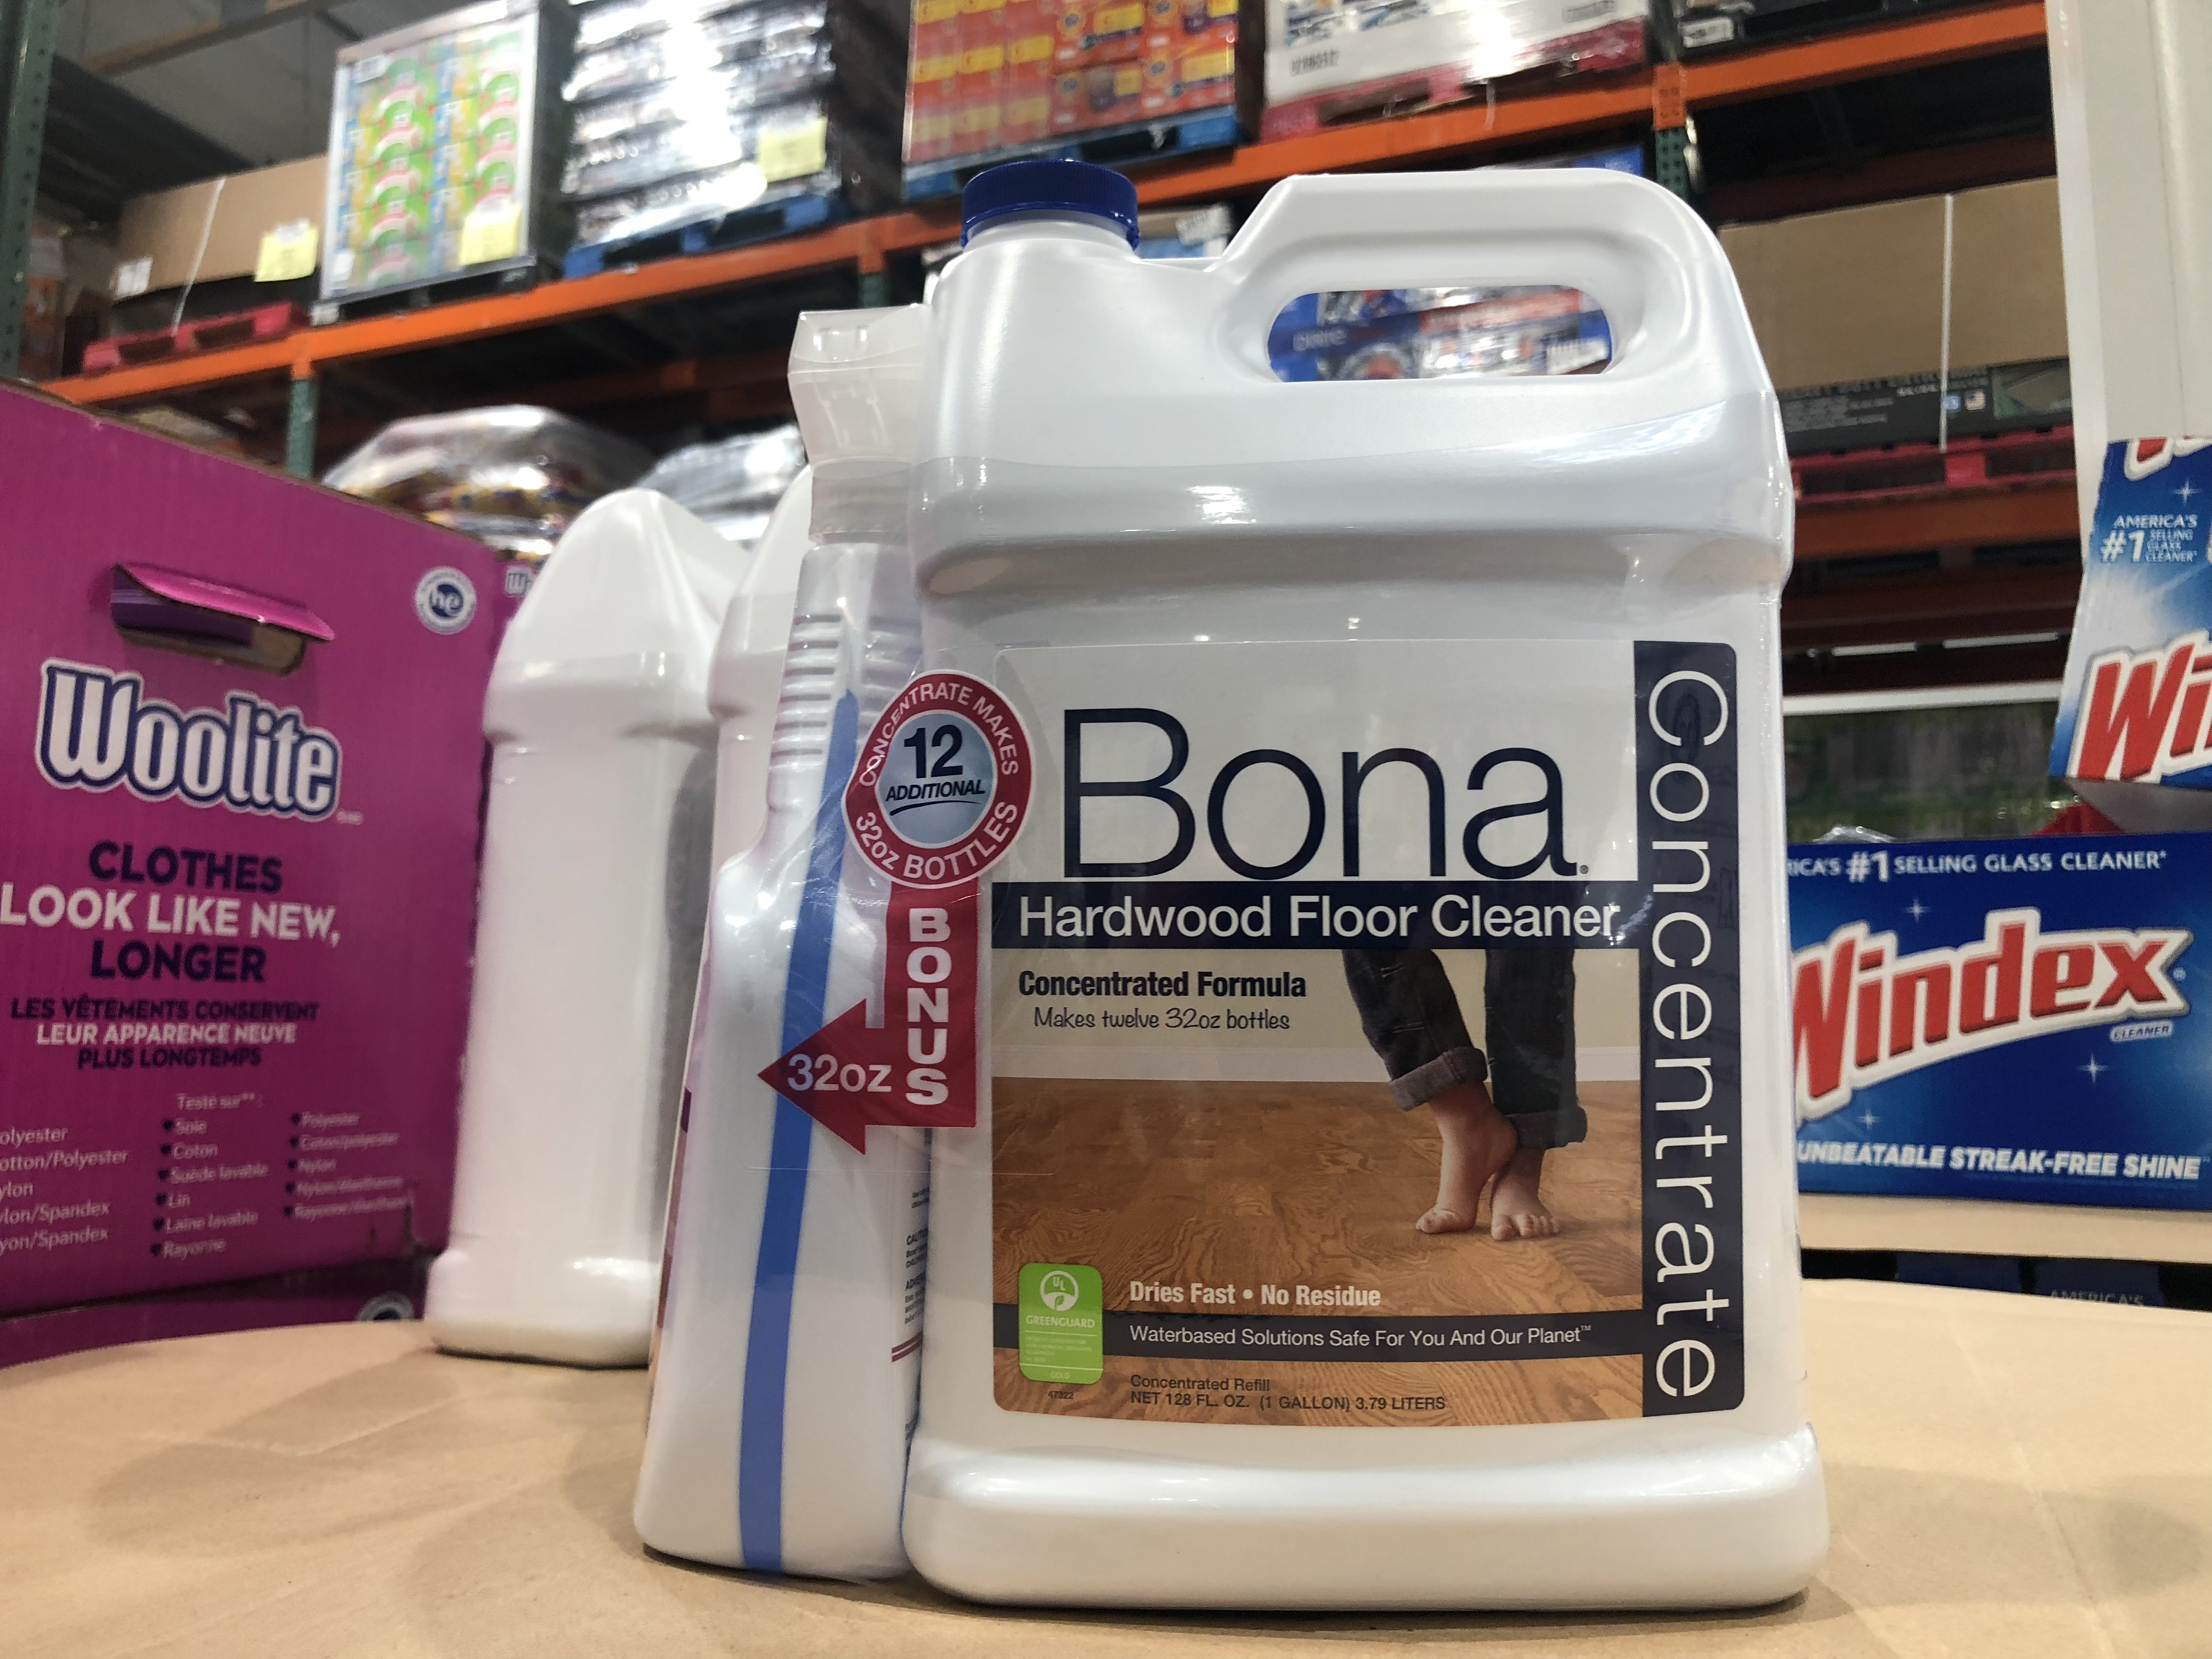 Costco Monthly Deals for September 2018 - Bona cleaner at Costco